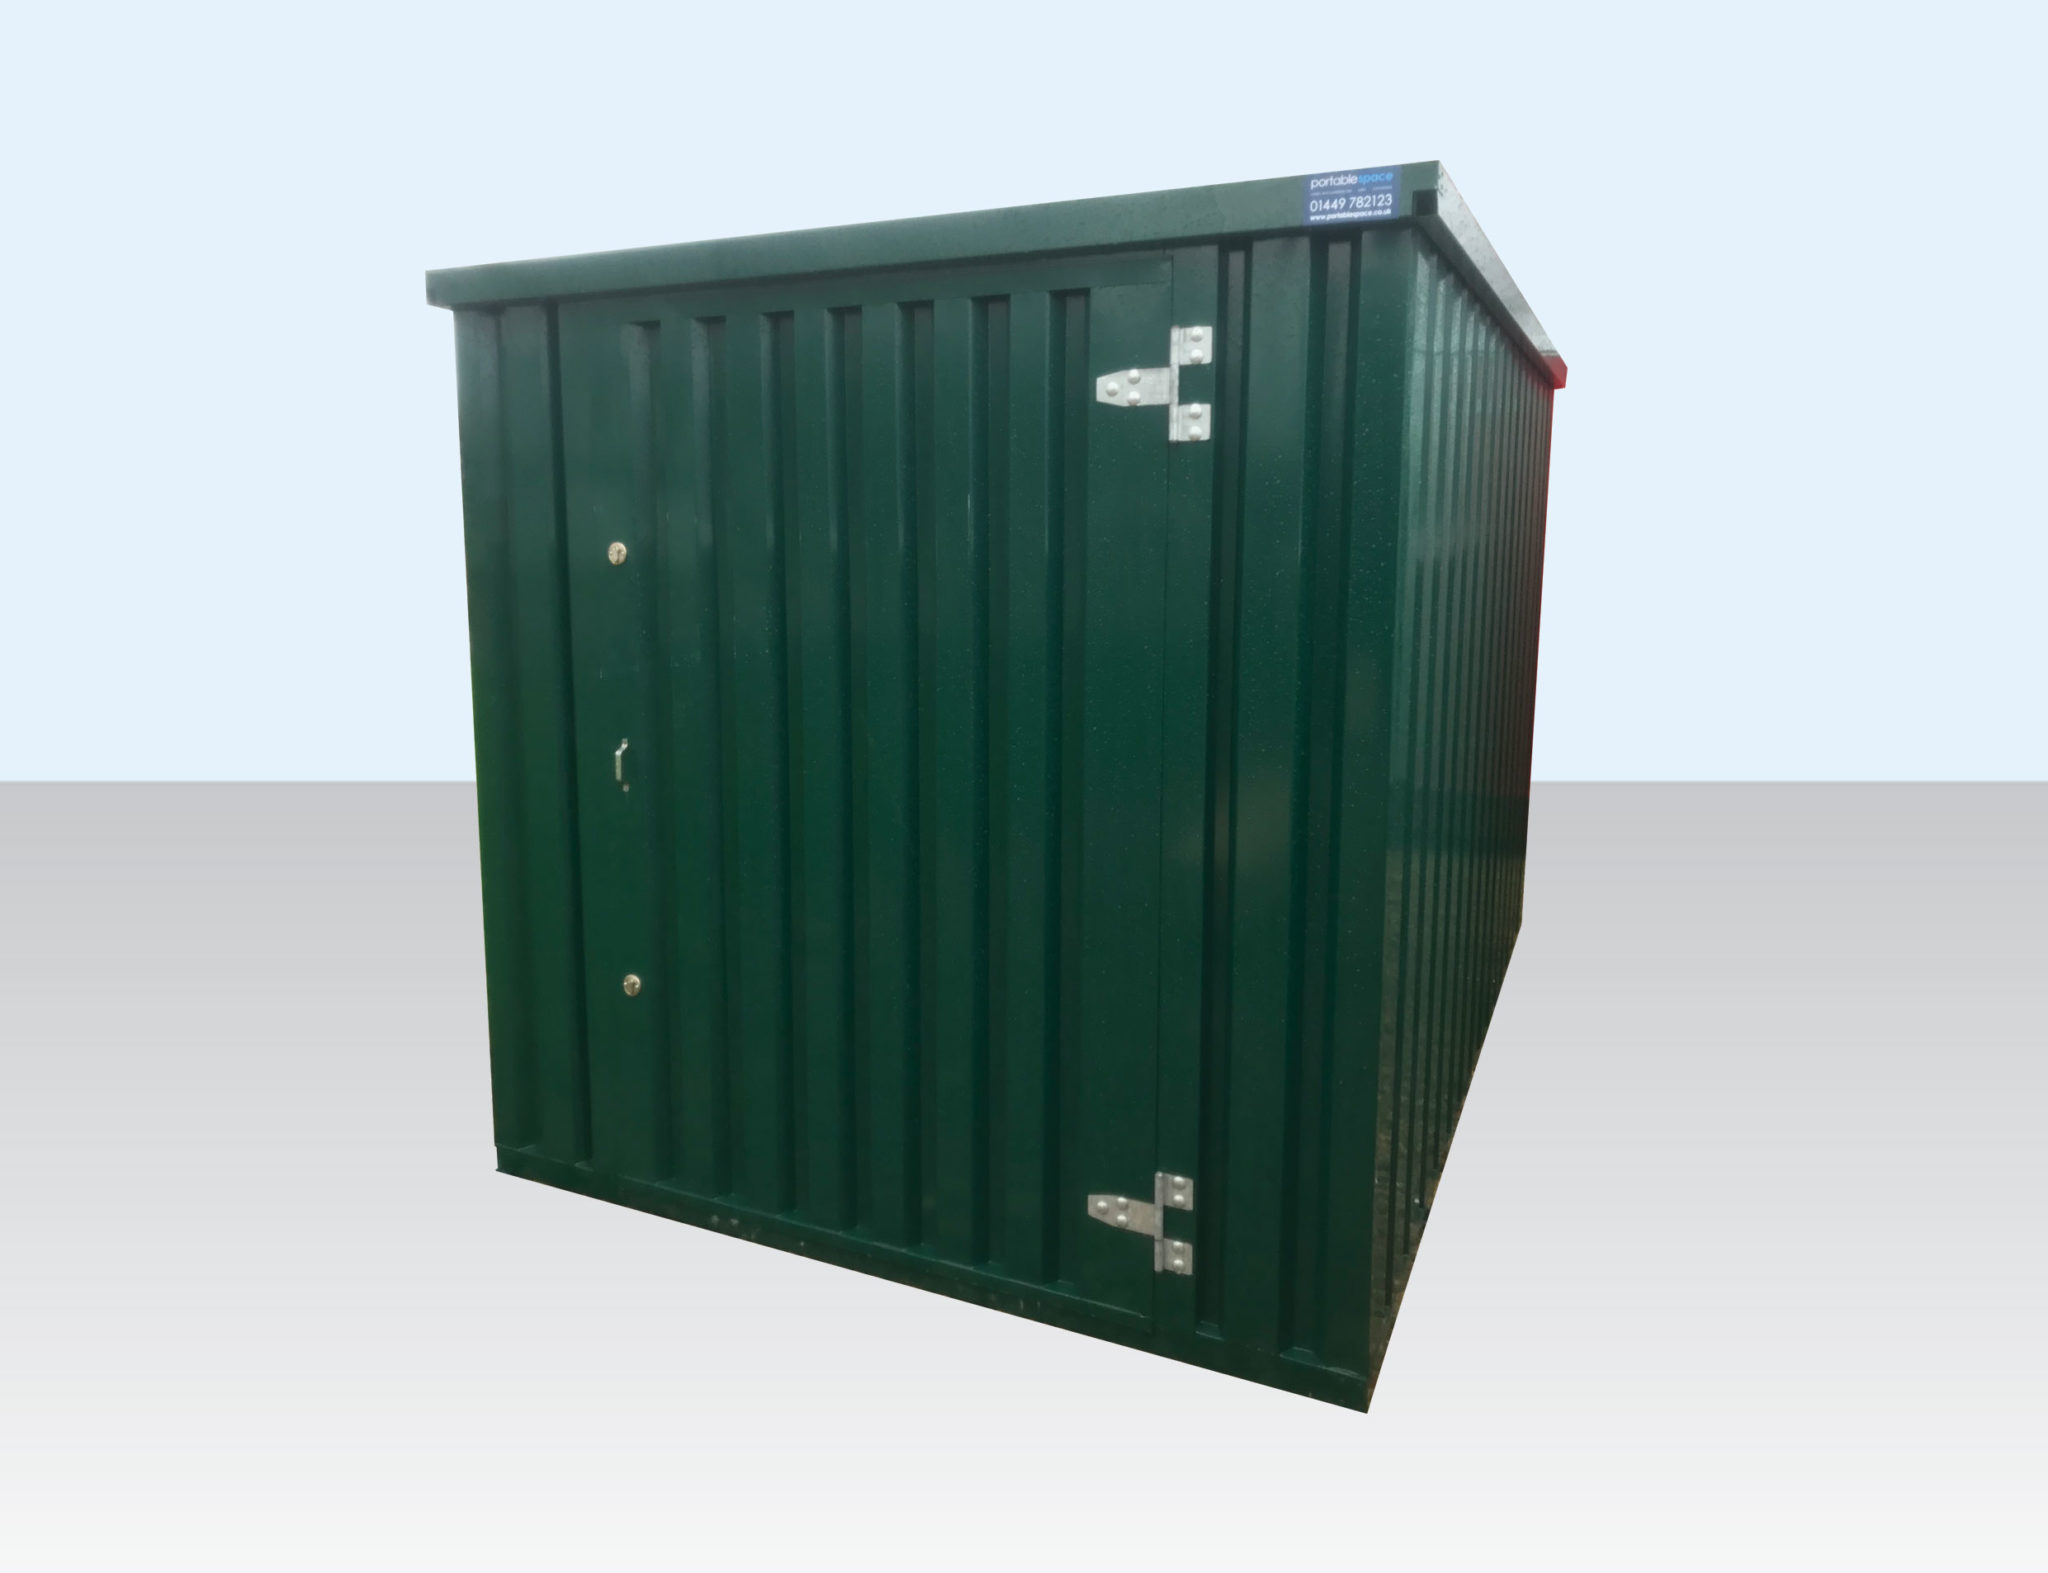 Exhibition Portable Flat Pack Furniture : Flat pack storage containers for schools clubs home